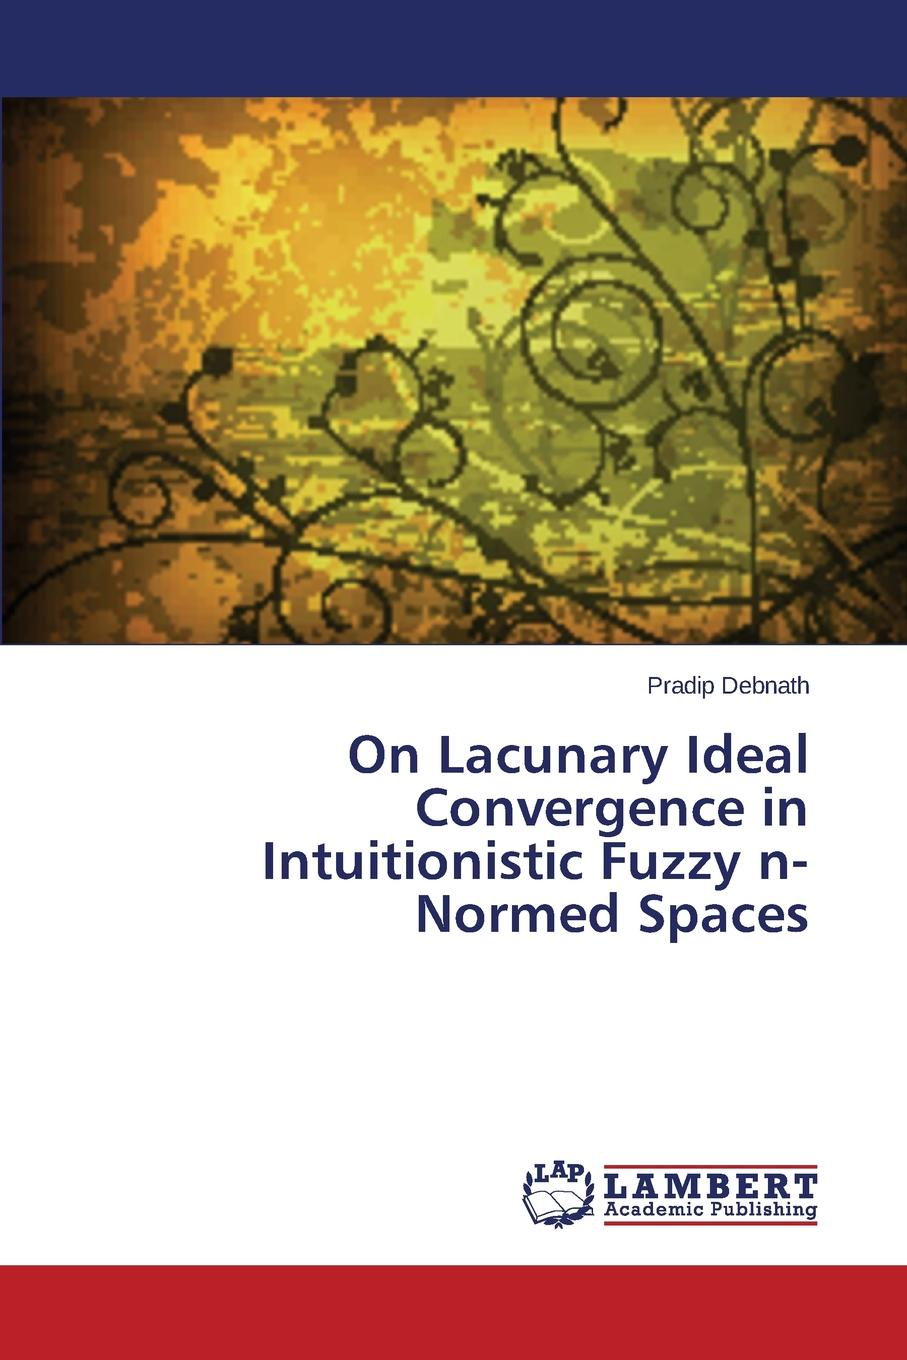 Debnath Pradip On Lacunary Ideal Convergence in Intuitionistic Fuzzy N-Normed Spaces блесна balzer colonel fuzzy